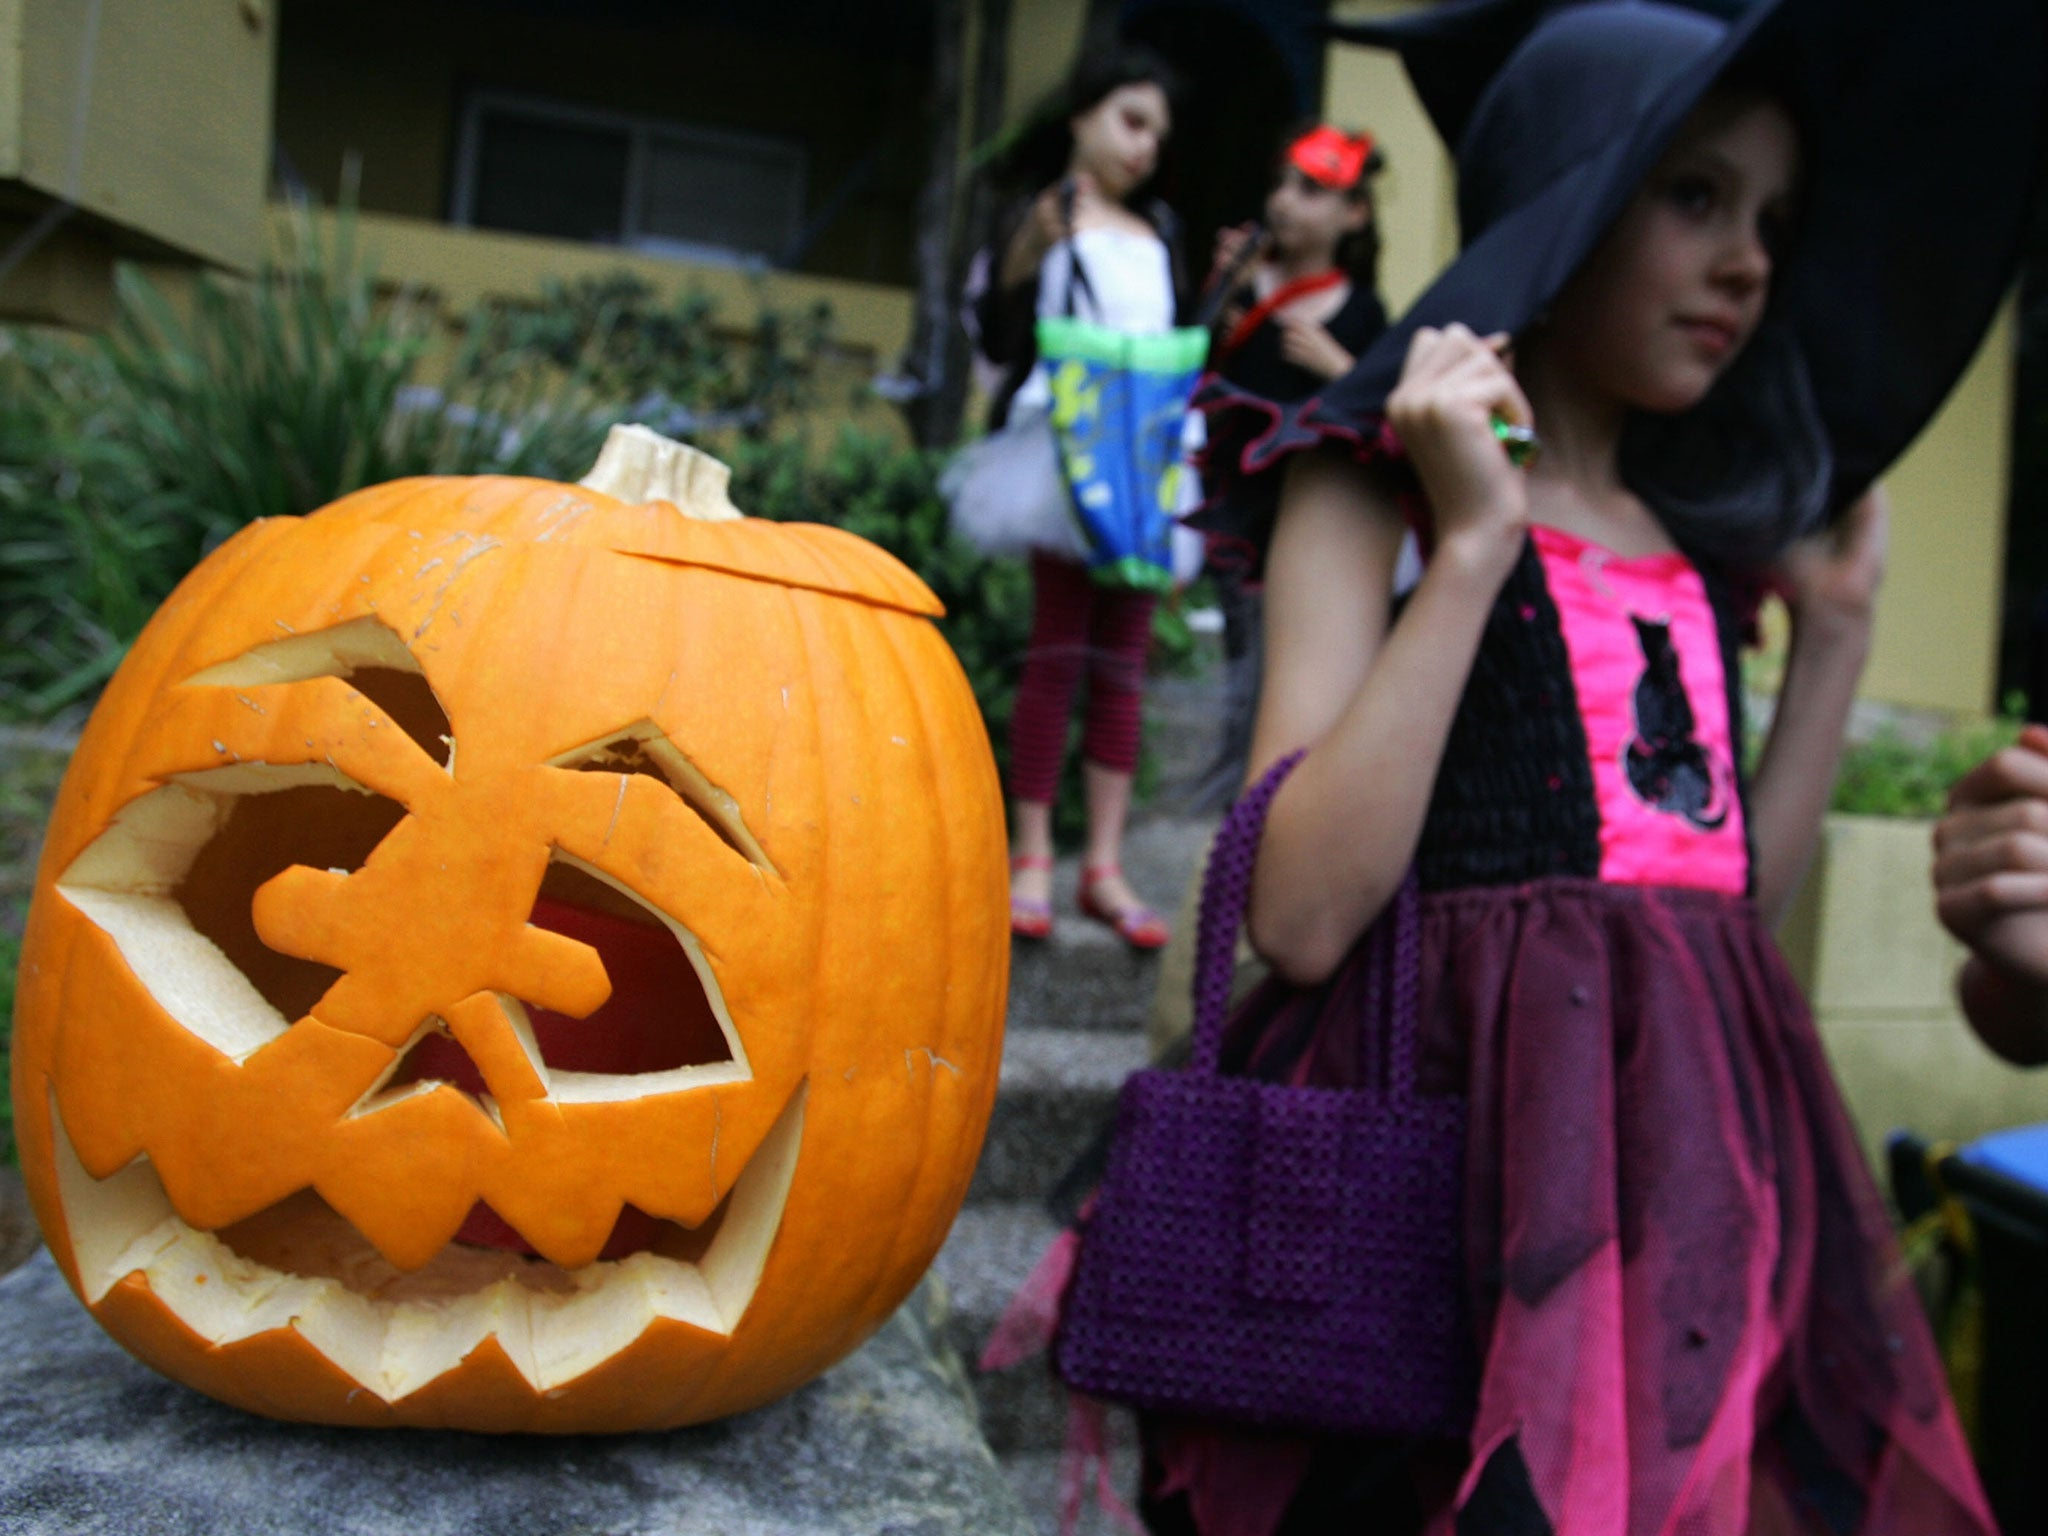 we have embraced america's cry-baby culture over offensive halloween